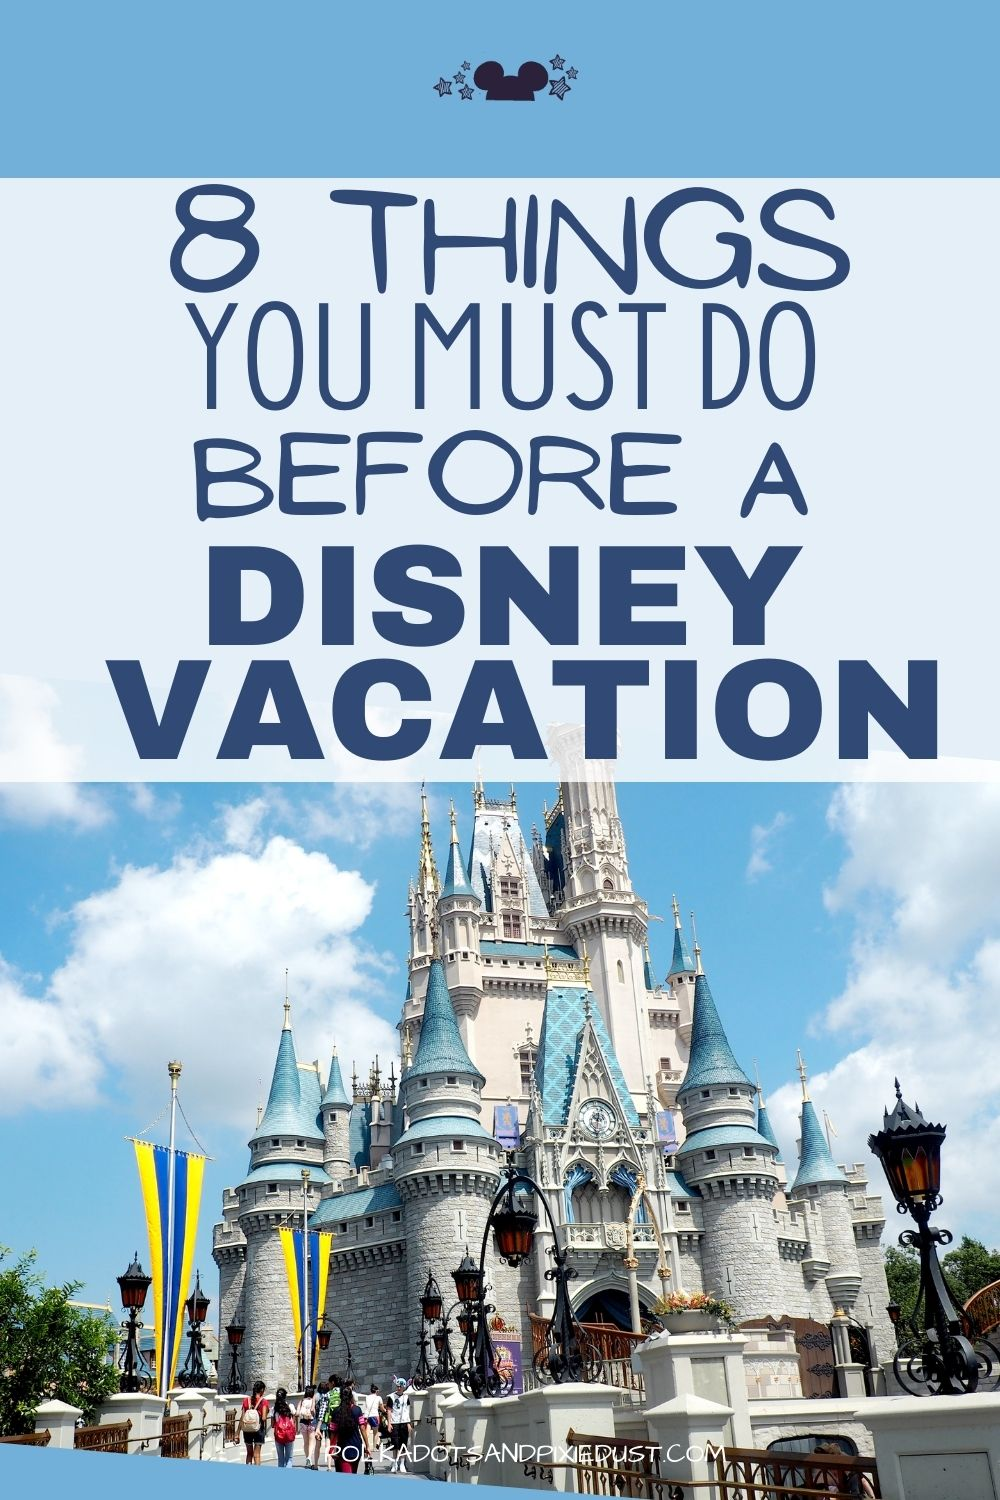 All the things you must do to prepare for a Disney Vacation